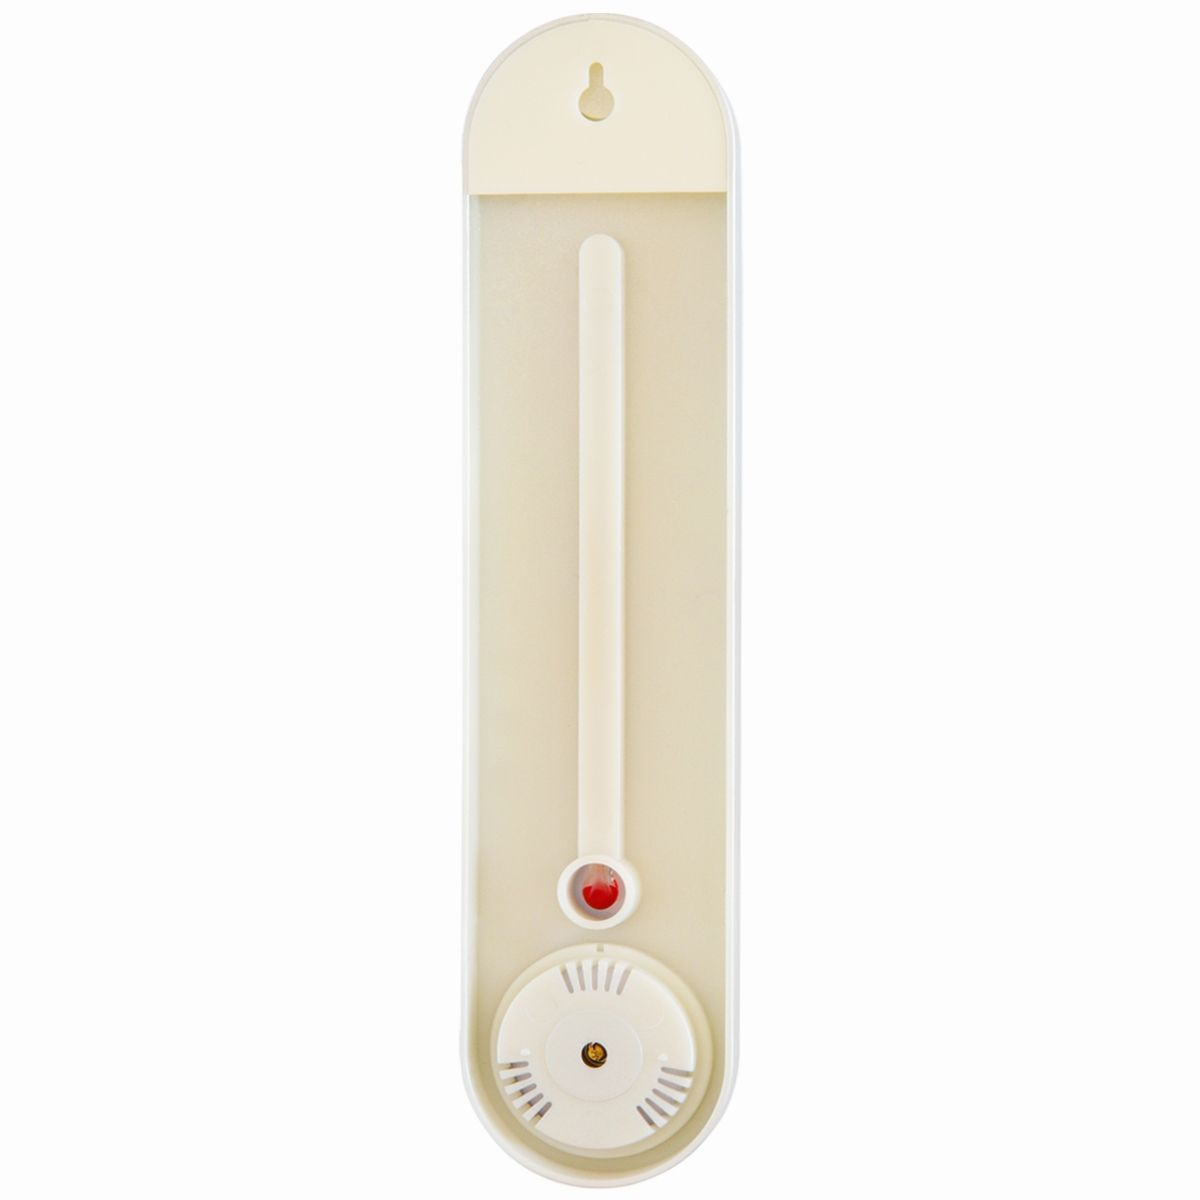 9013 temperature thermometer indoor and outdoor temperature hygrometer